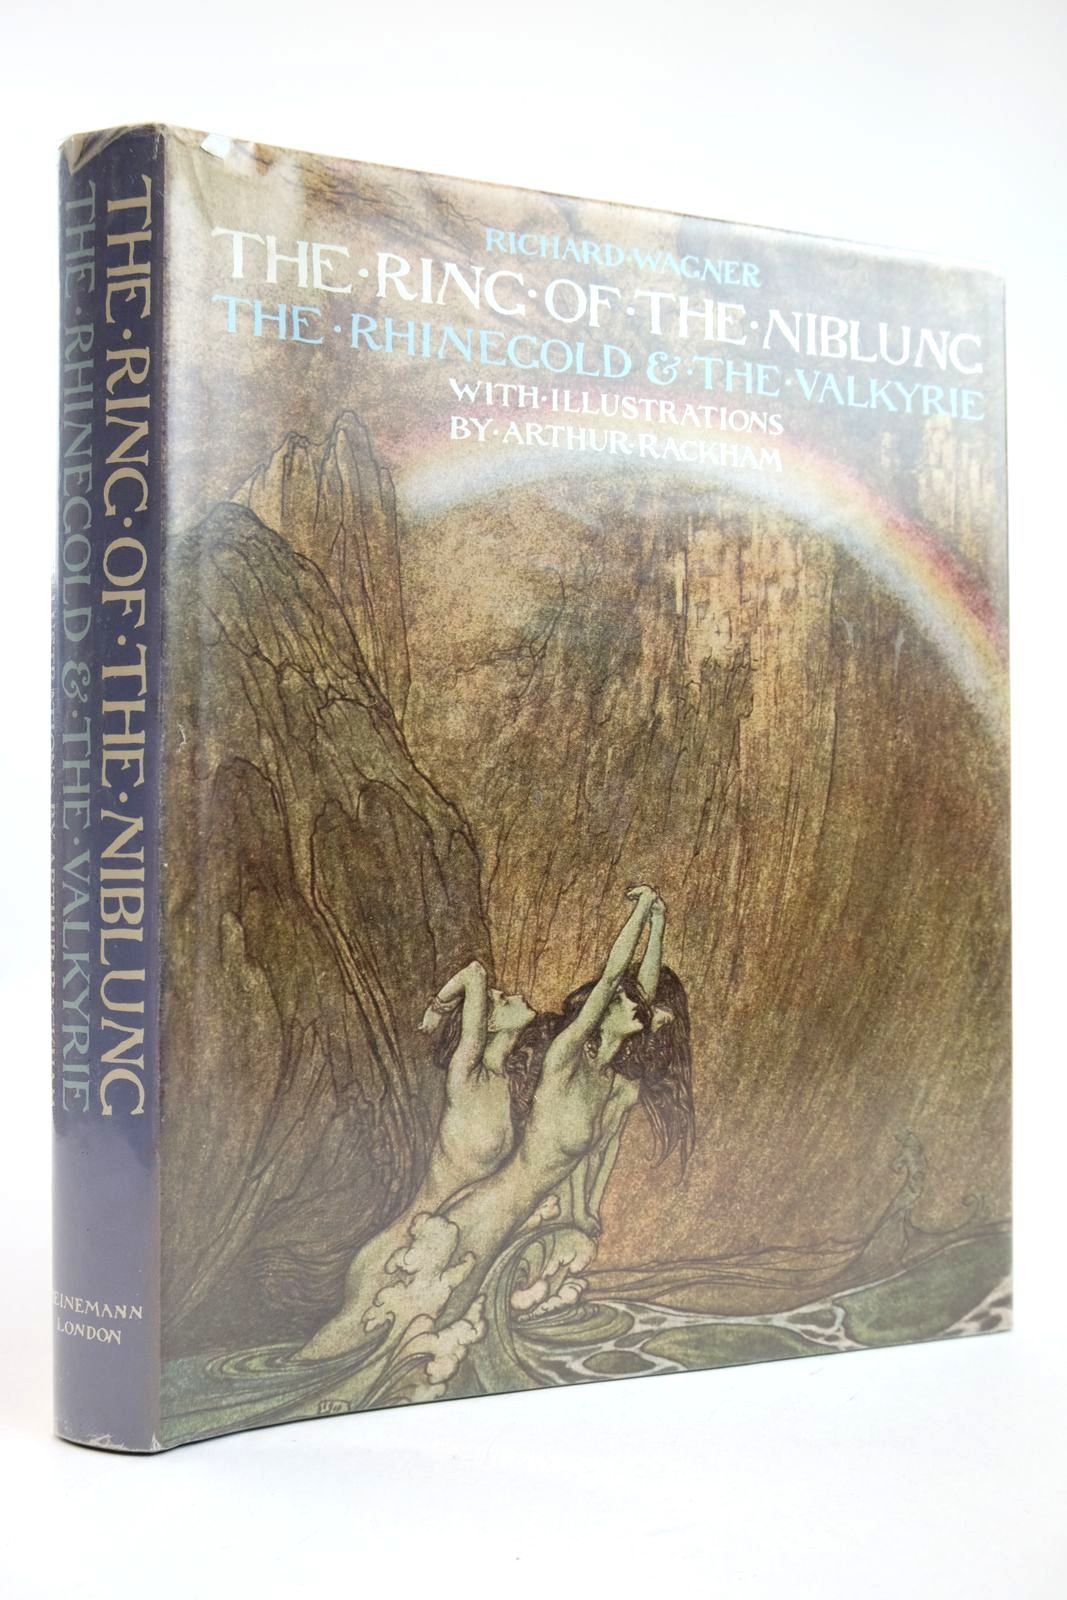 Photo of THE RING OF THE NIBLUNG: THE RHINEGOLD AND THE VALKYRIE- Stock Number: 2132696